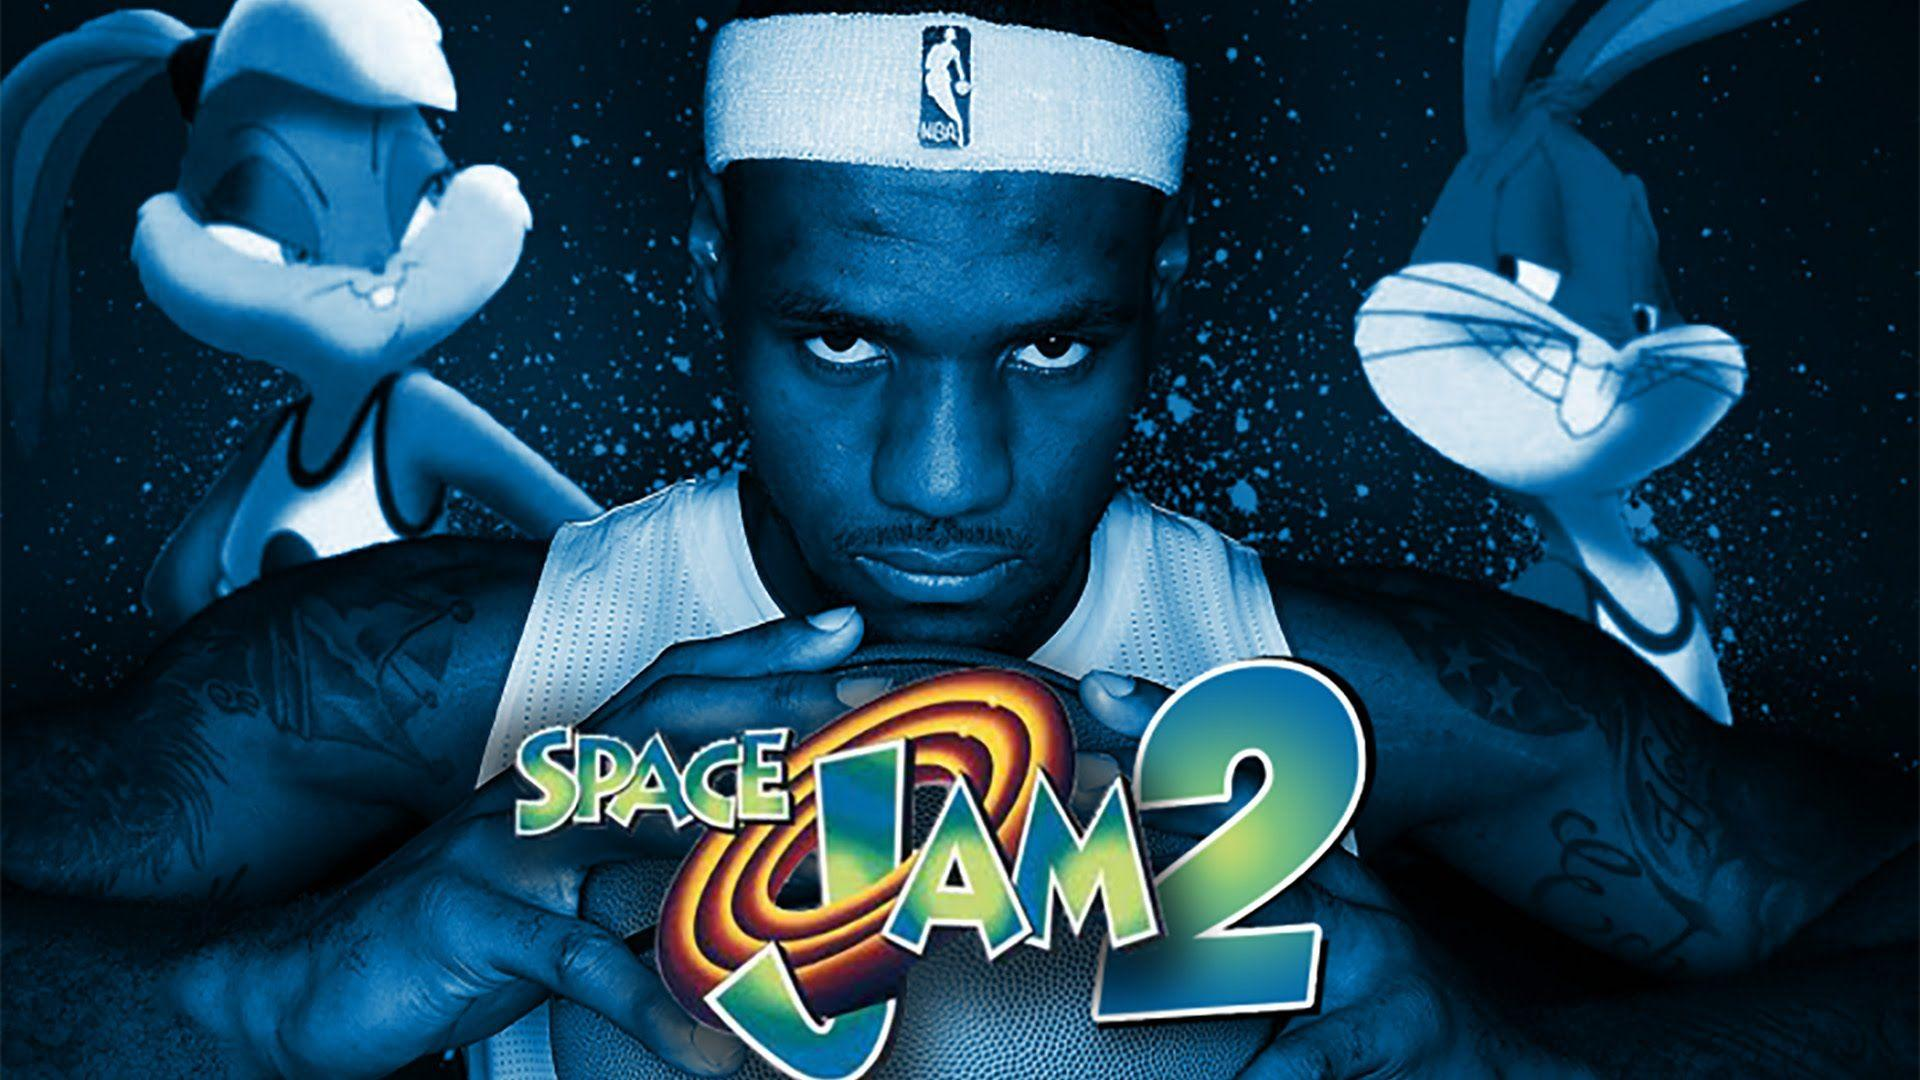 Space Jam 2 Wallpapers   Top Space Jam 2 Backgrounds 1920x1080